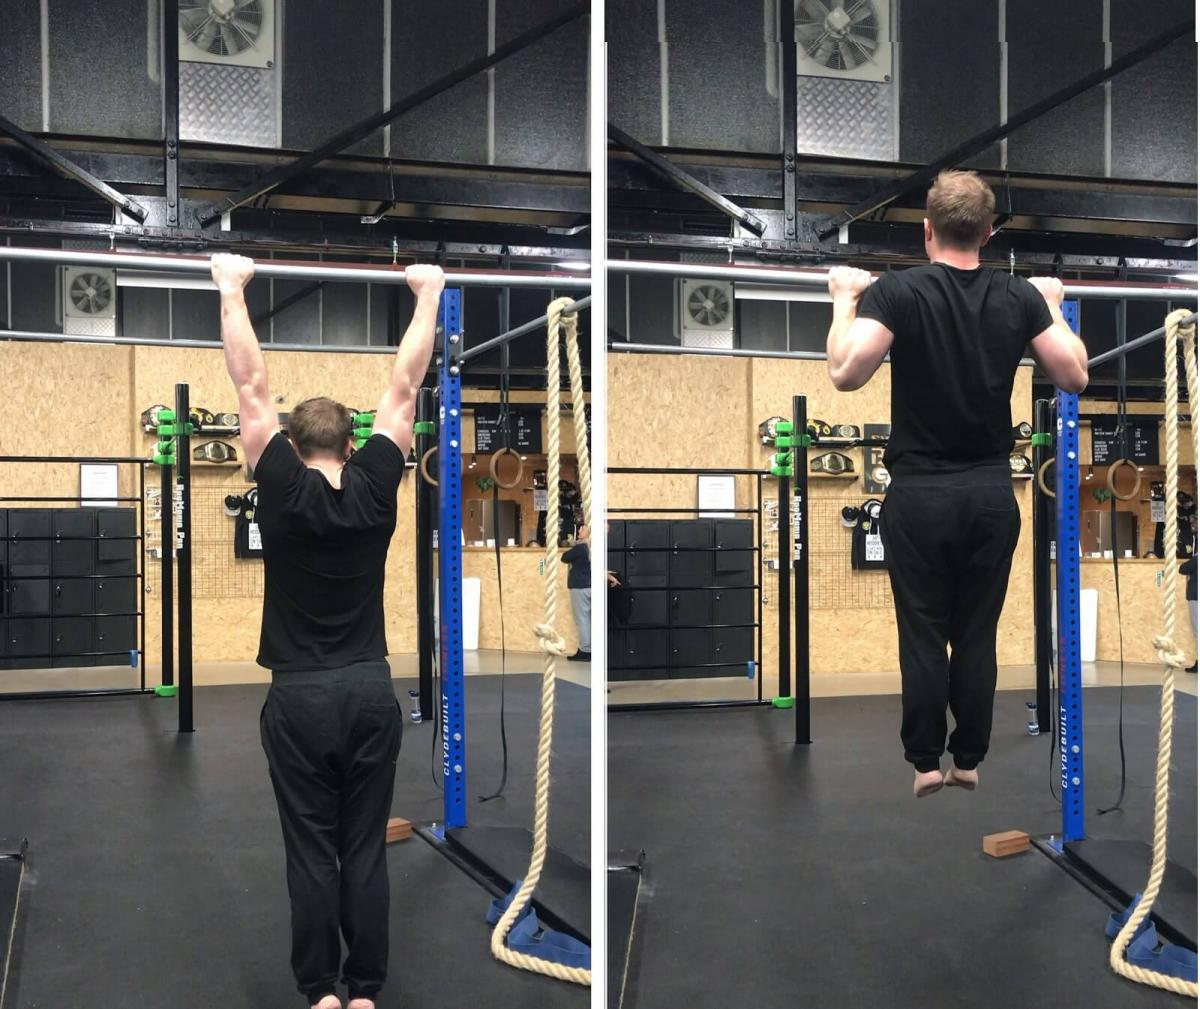 Pull-Up Technique - Dead Hang to Full Contraction